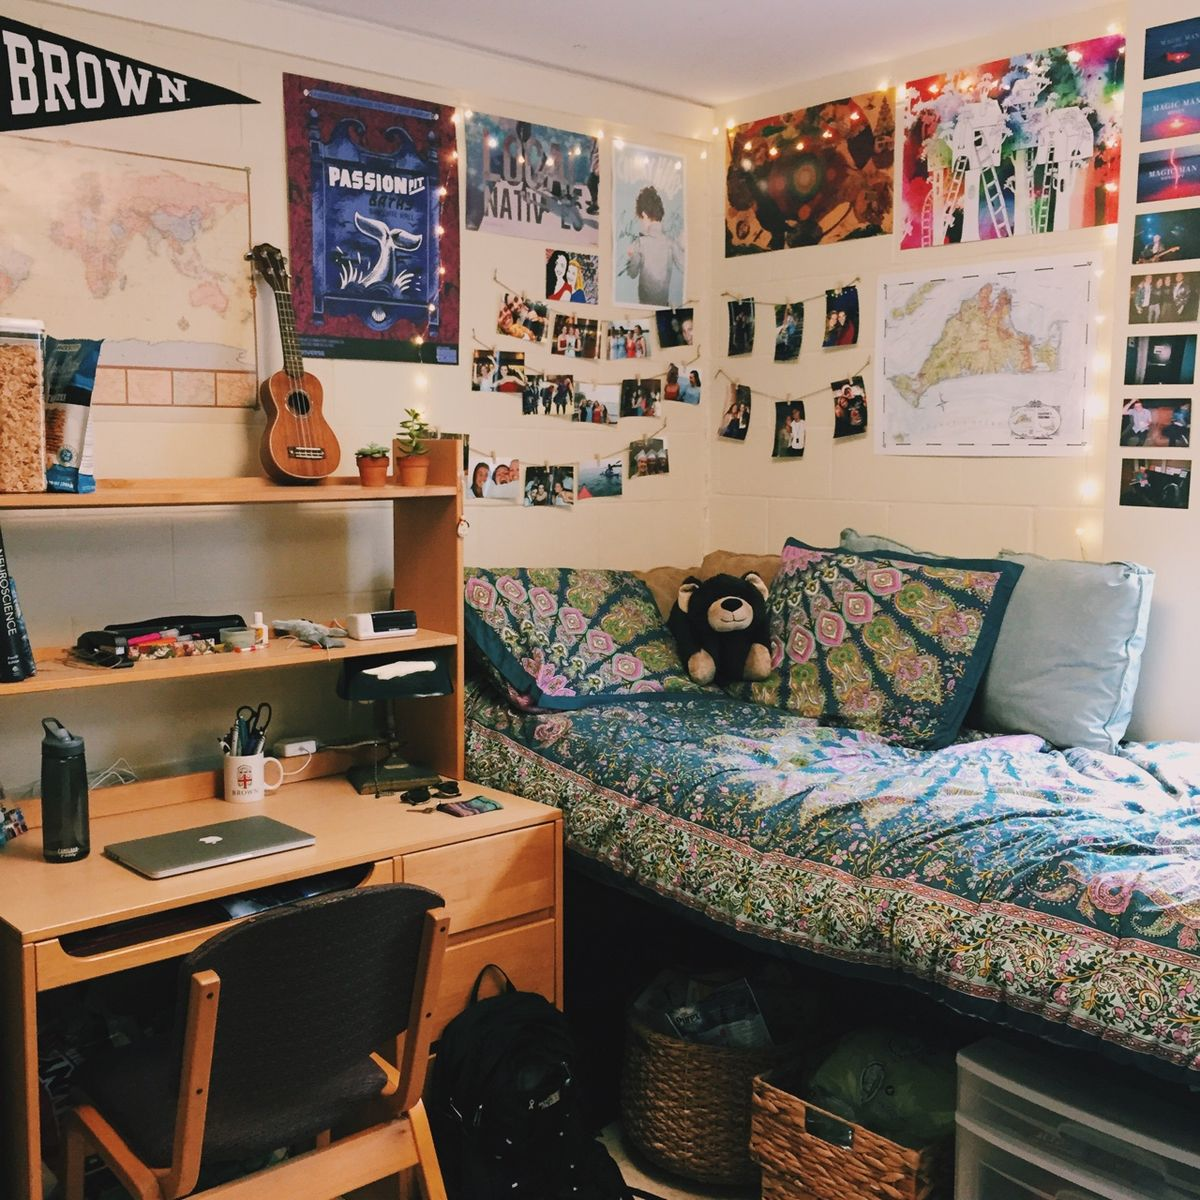 10 Things You Won't Miss About Living In A Dorm